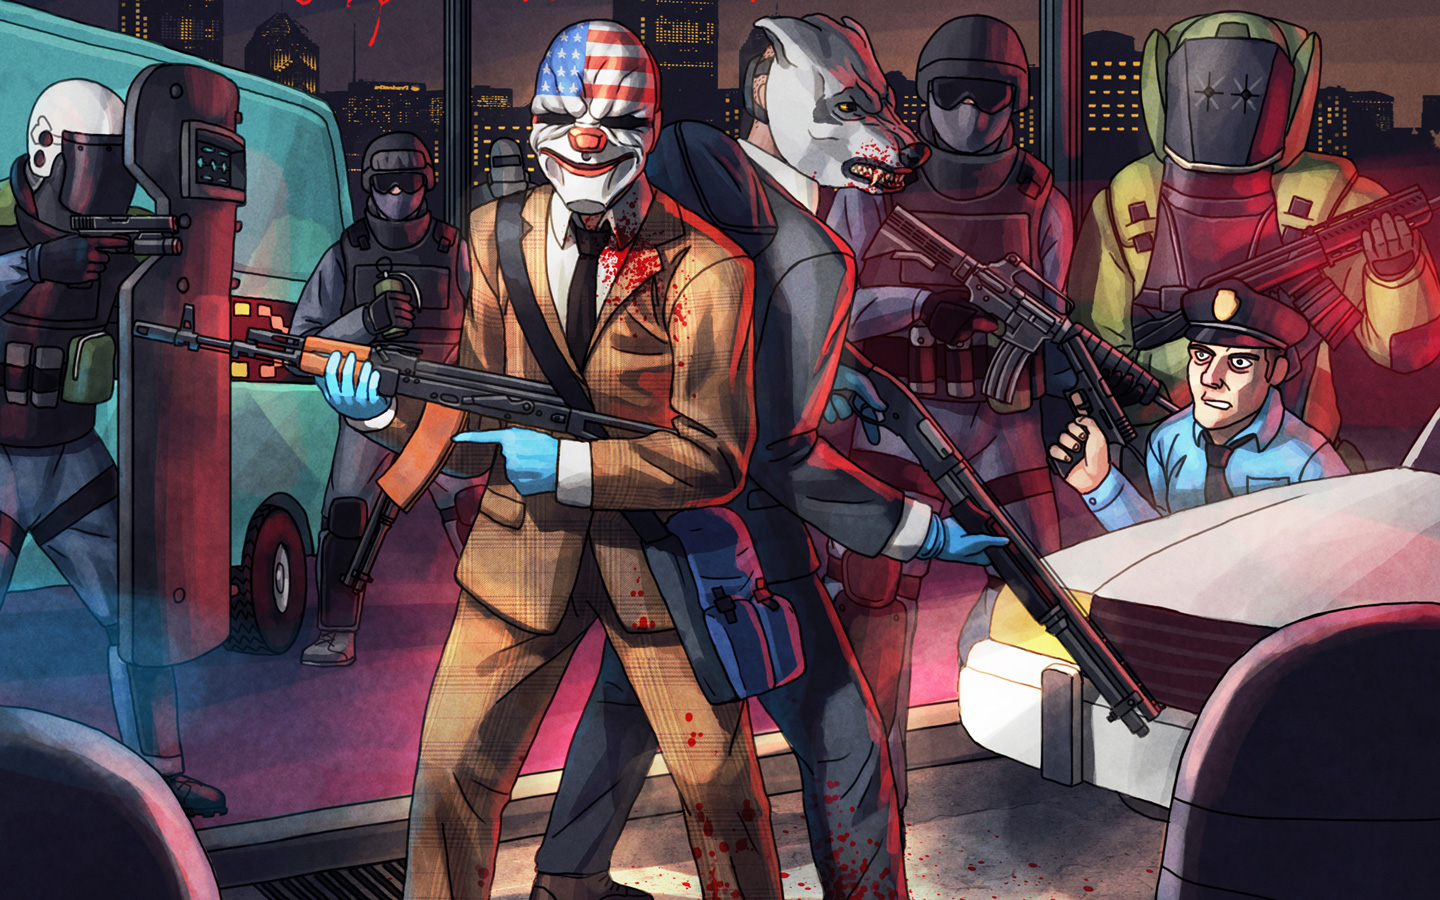 Free Payday 2 Wallpaper in 1440x900